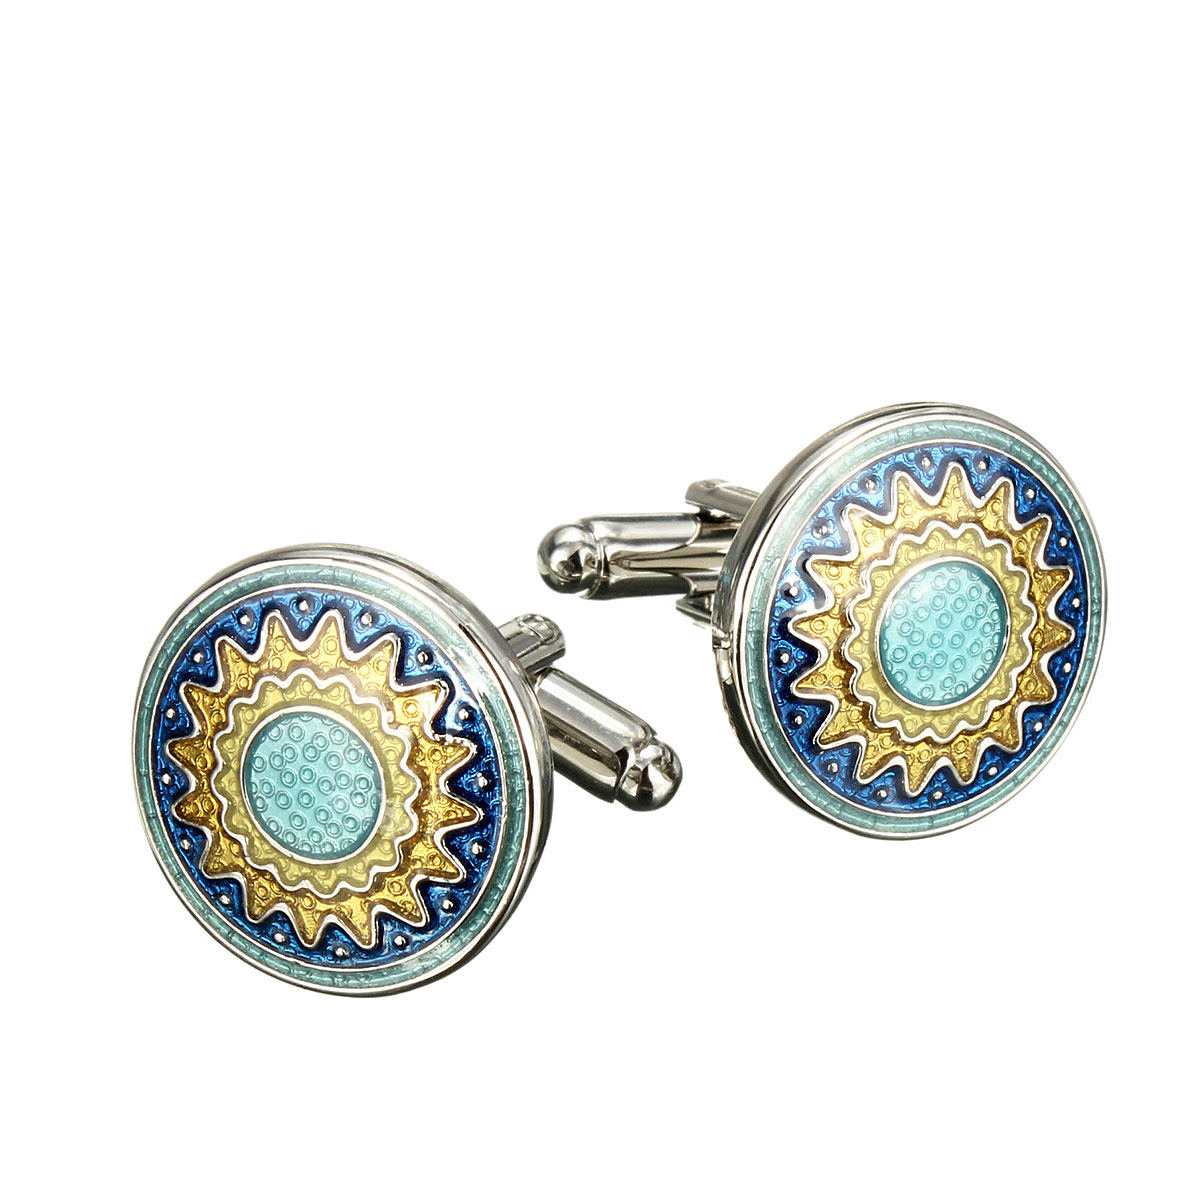 Men Vintage Enamel Sunflower Gold Silver Cuff Links Wedding Party Gift Shirt Suit Accessories